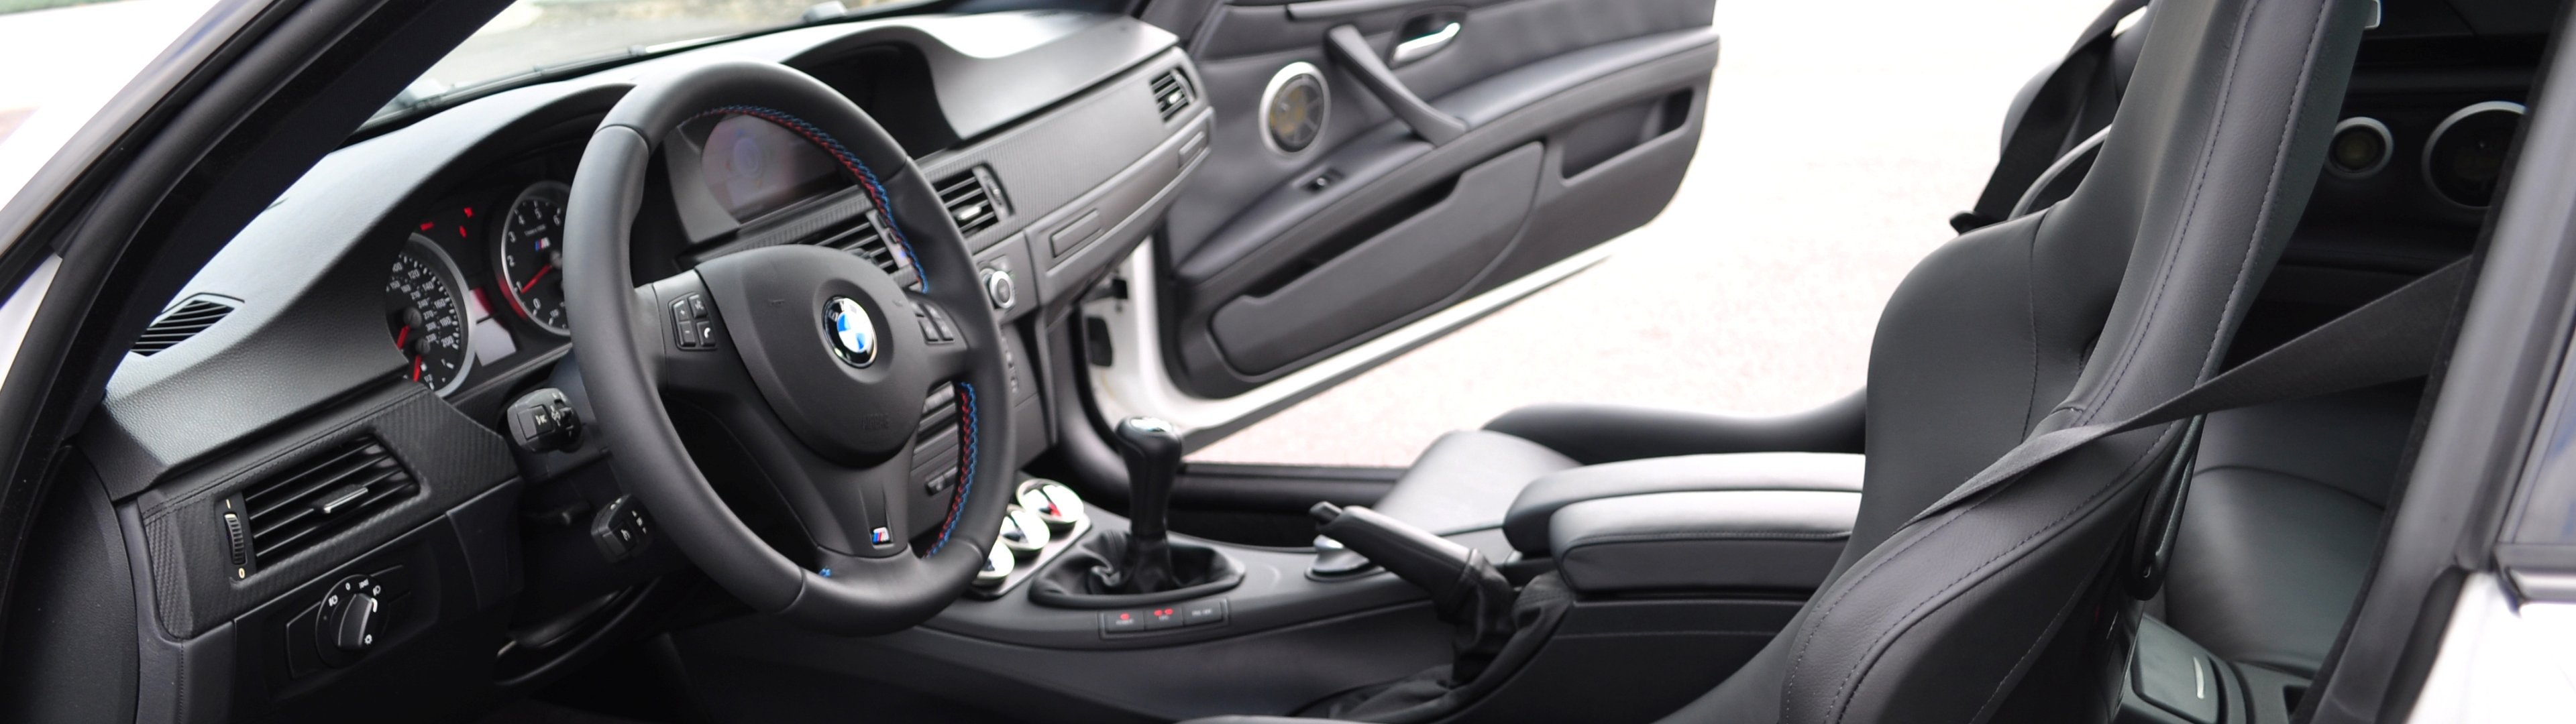 Shutterstock.com sizing the walls sizing allows you to maneuver the paper into position on the wall without tearing. Bmw Car Interiors Bmw 1 Series M Coupe Wallpaper 3840x1080 246771 Wallpaperup